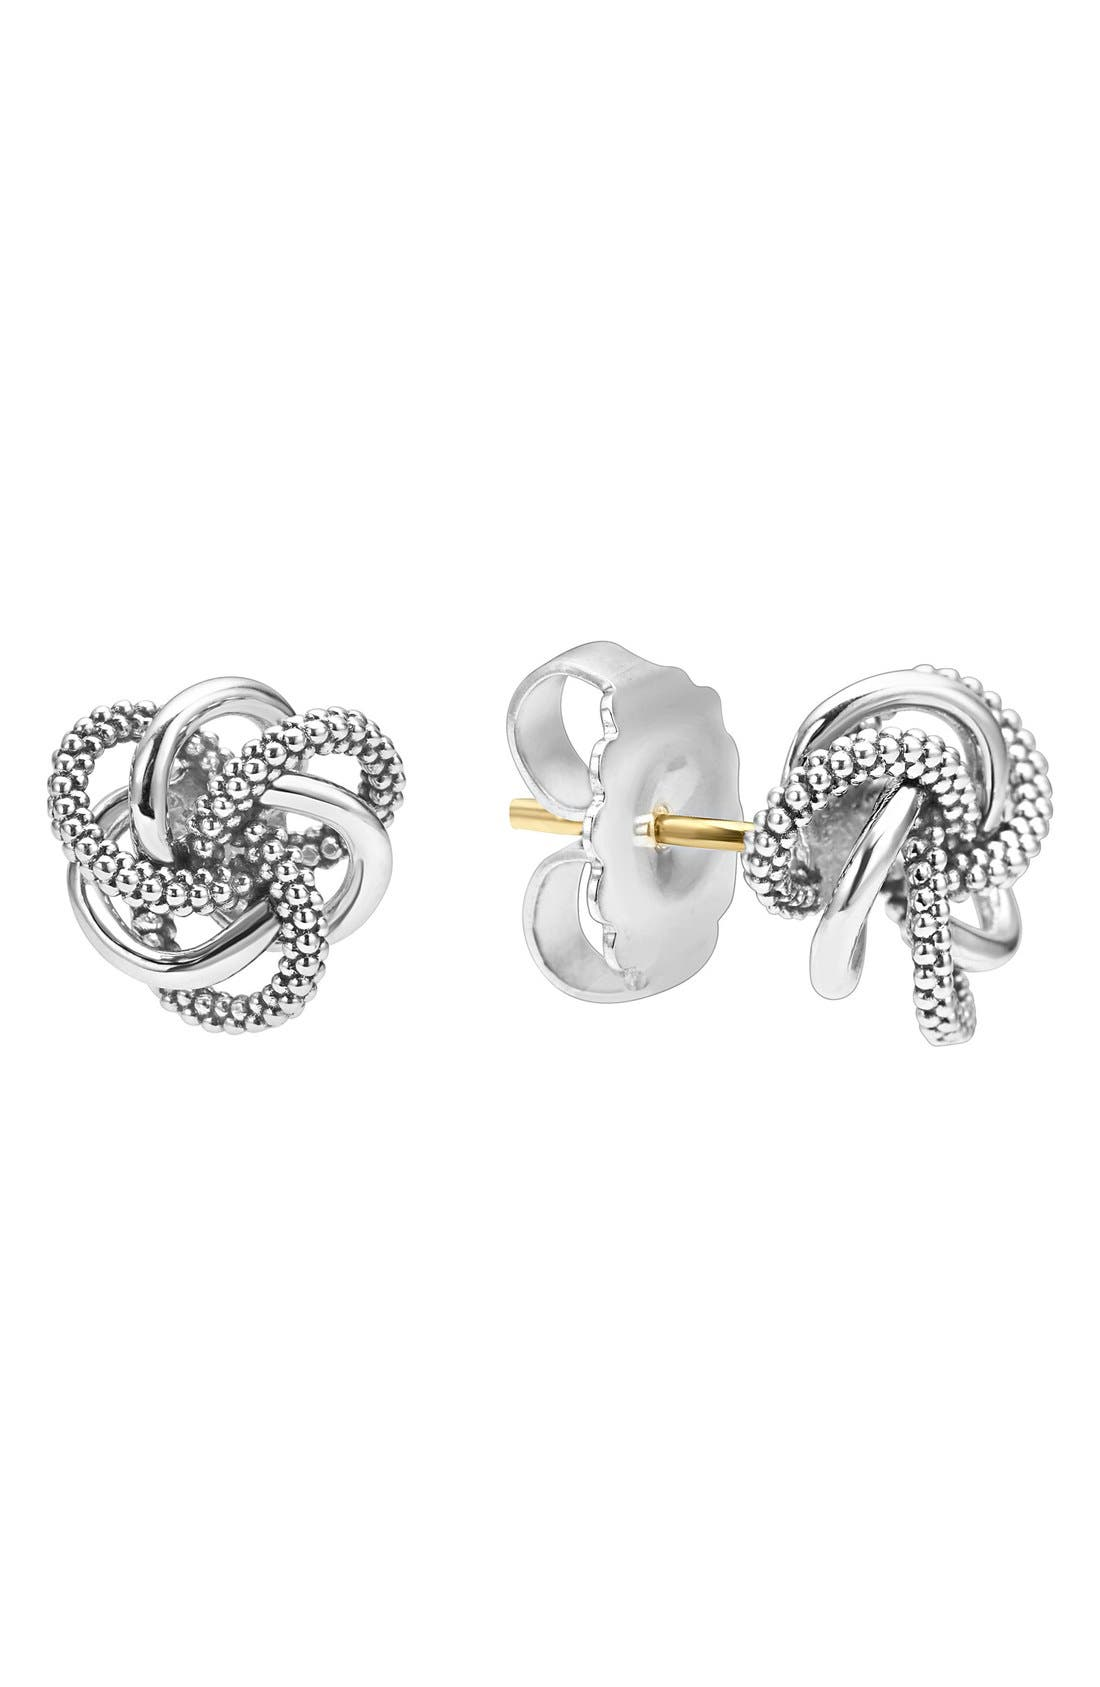 Main Image - LAGOS 'Love Knot' Sterling Silver Stud Earrings